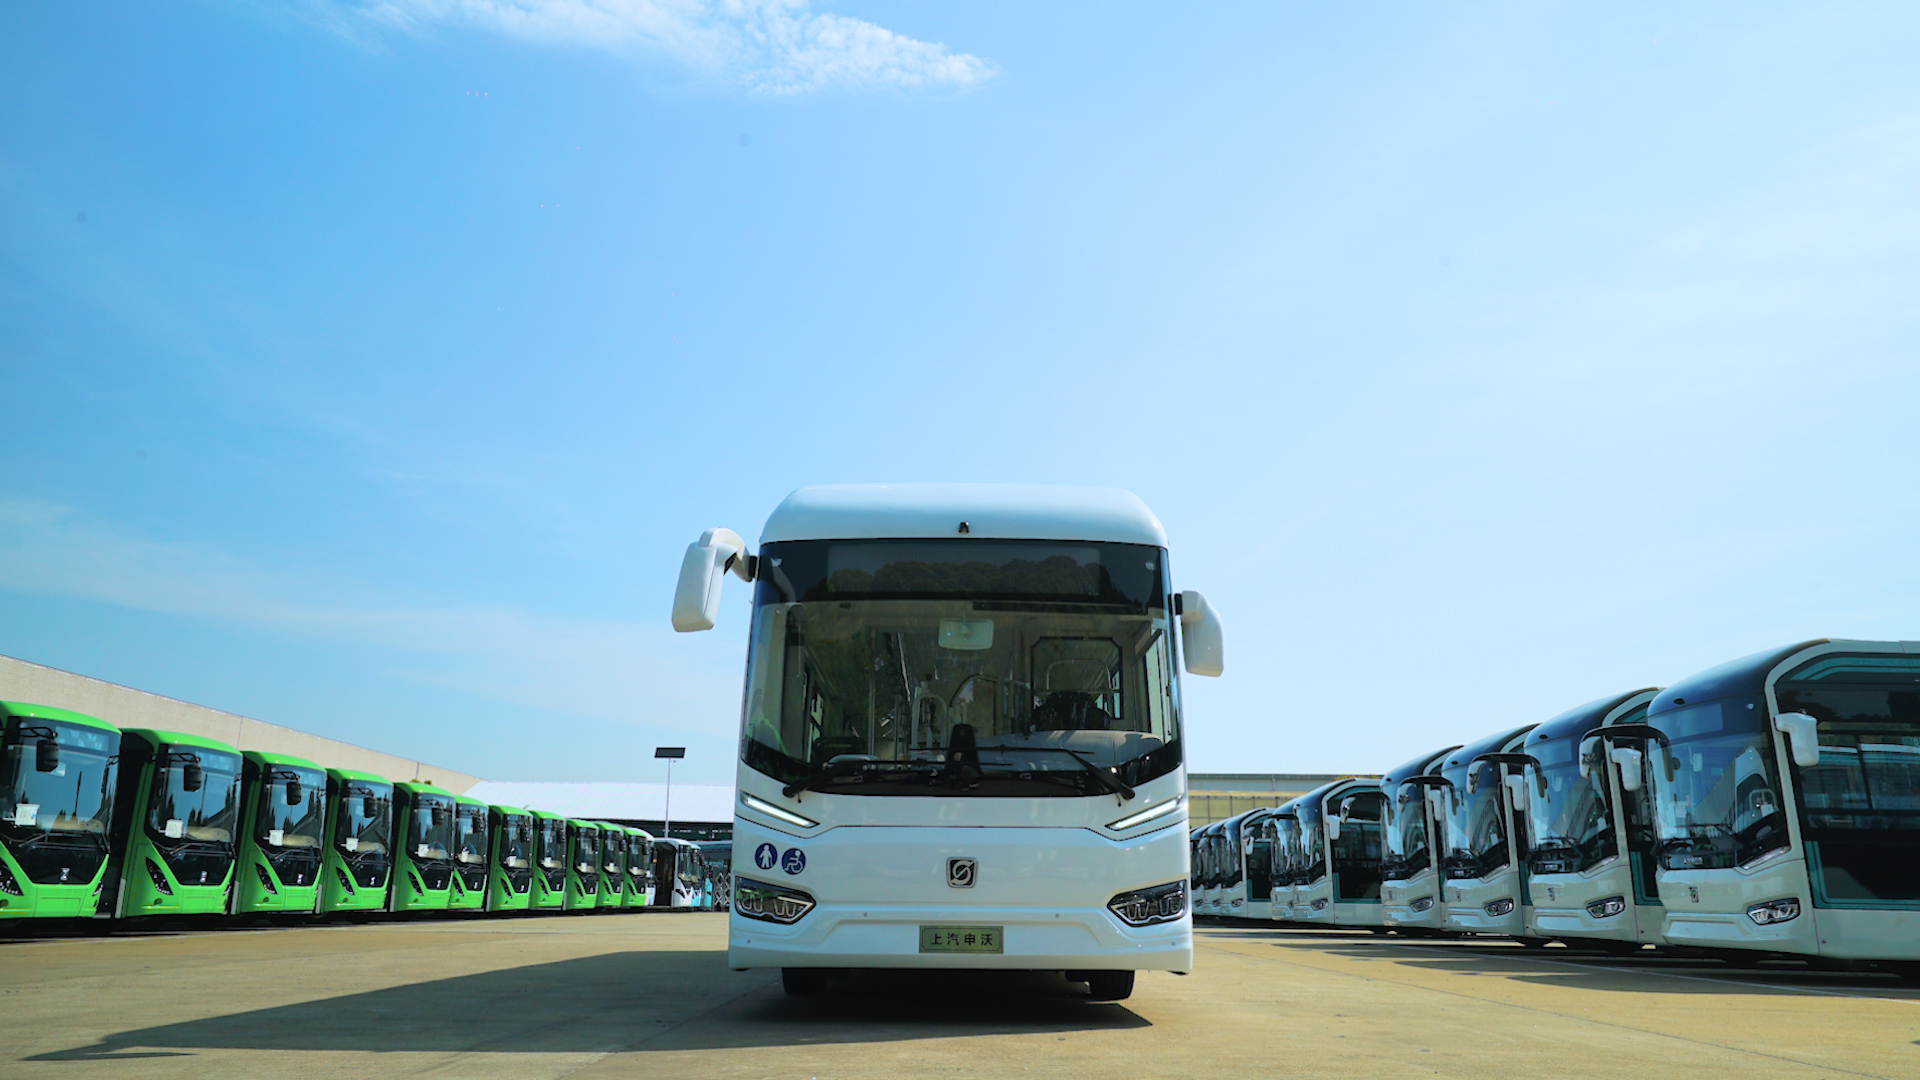 Shanghai Sunwin Bus presents its brand-new healthcare bus, ready to roll out across operations to help minimize the spread of coronavirus.